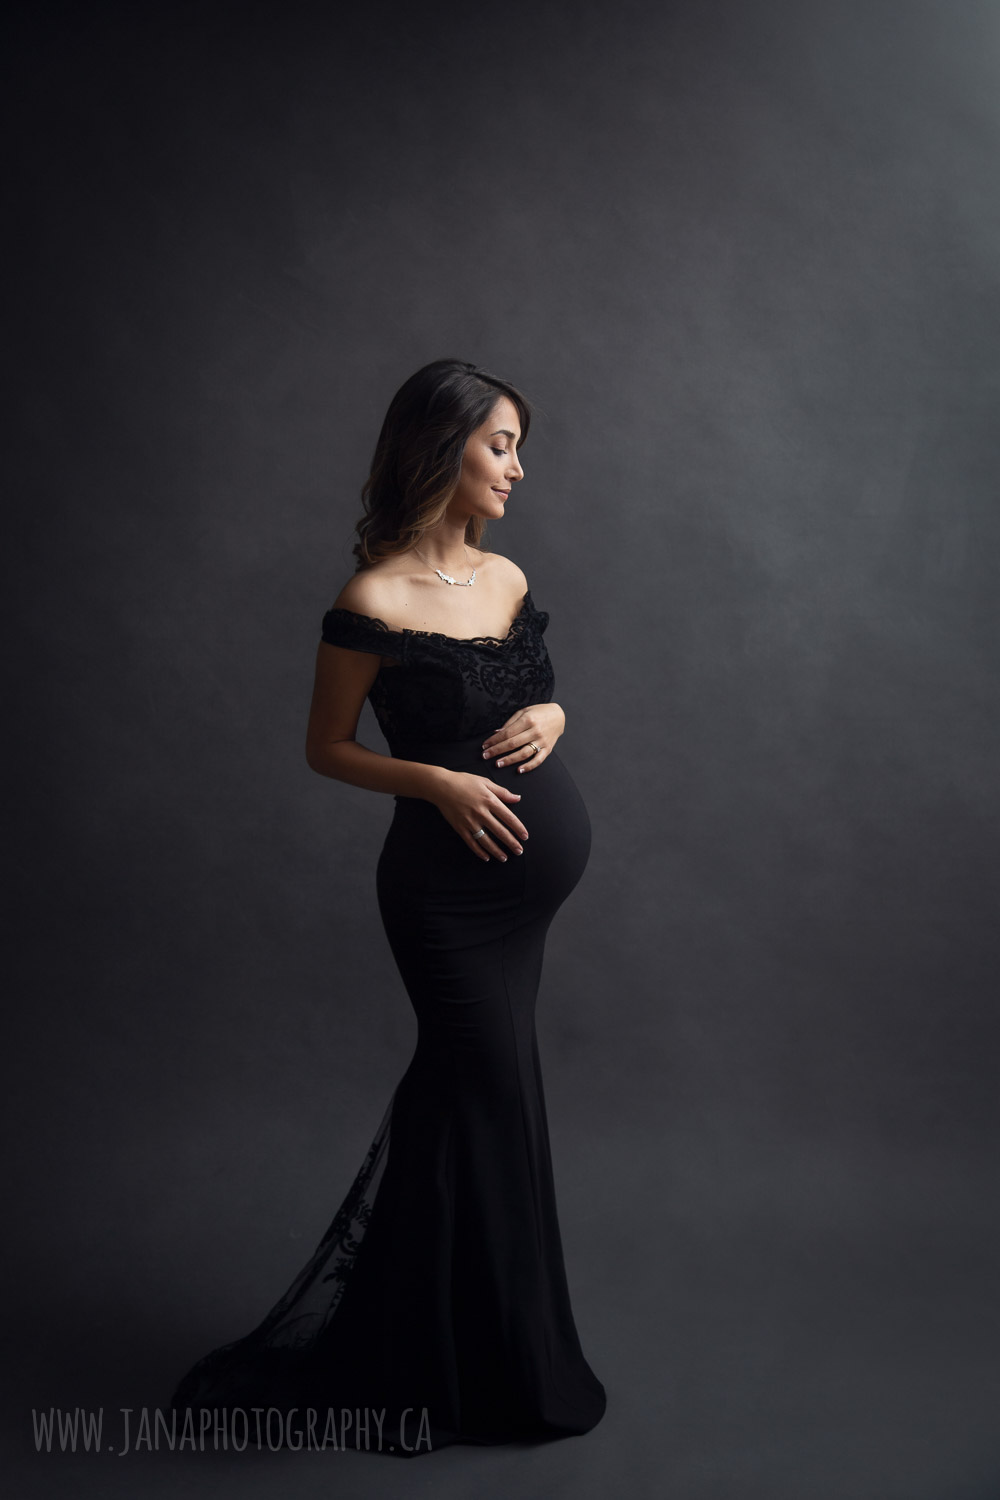 Pregnant woman with black dress in maternity photo black background